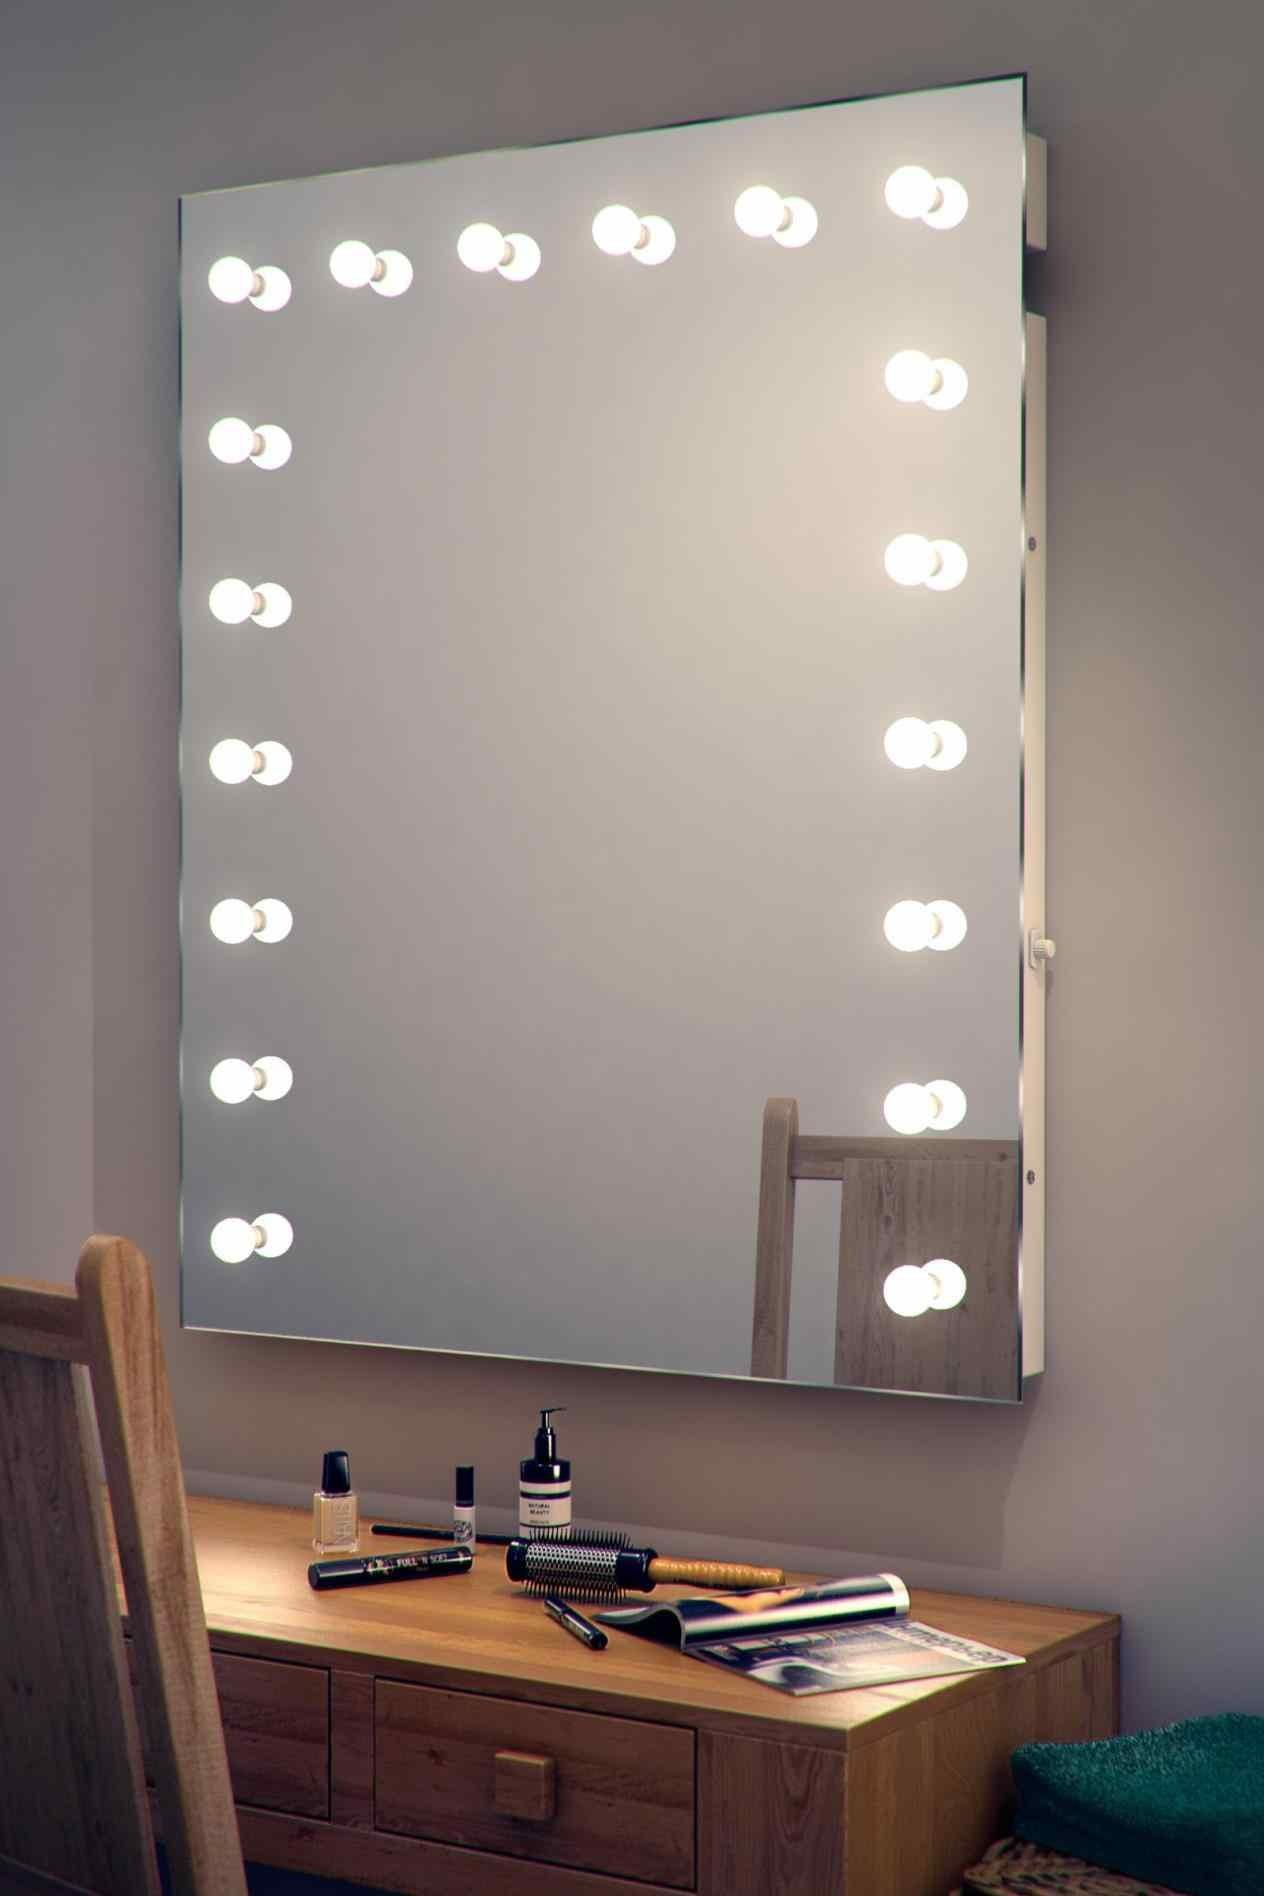 Backlit Mirror Diy Modern Wall Mounted Magnifying